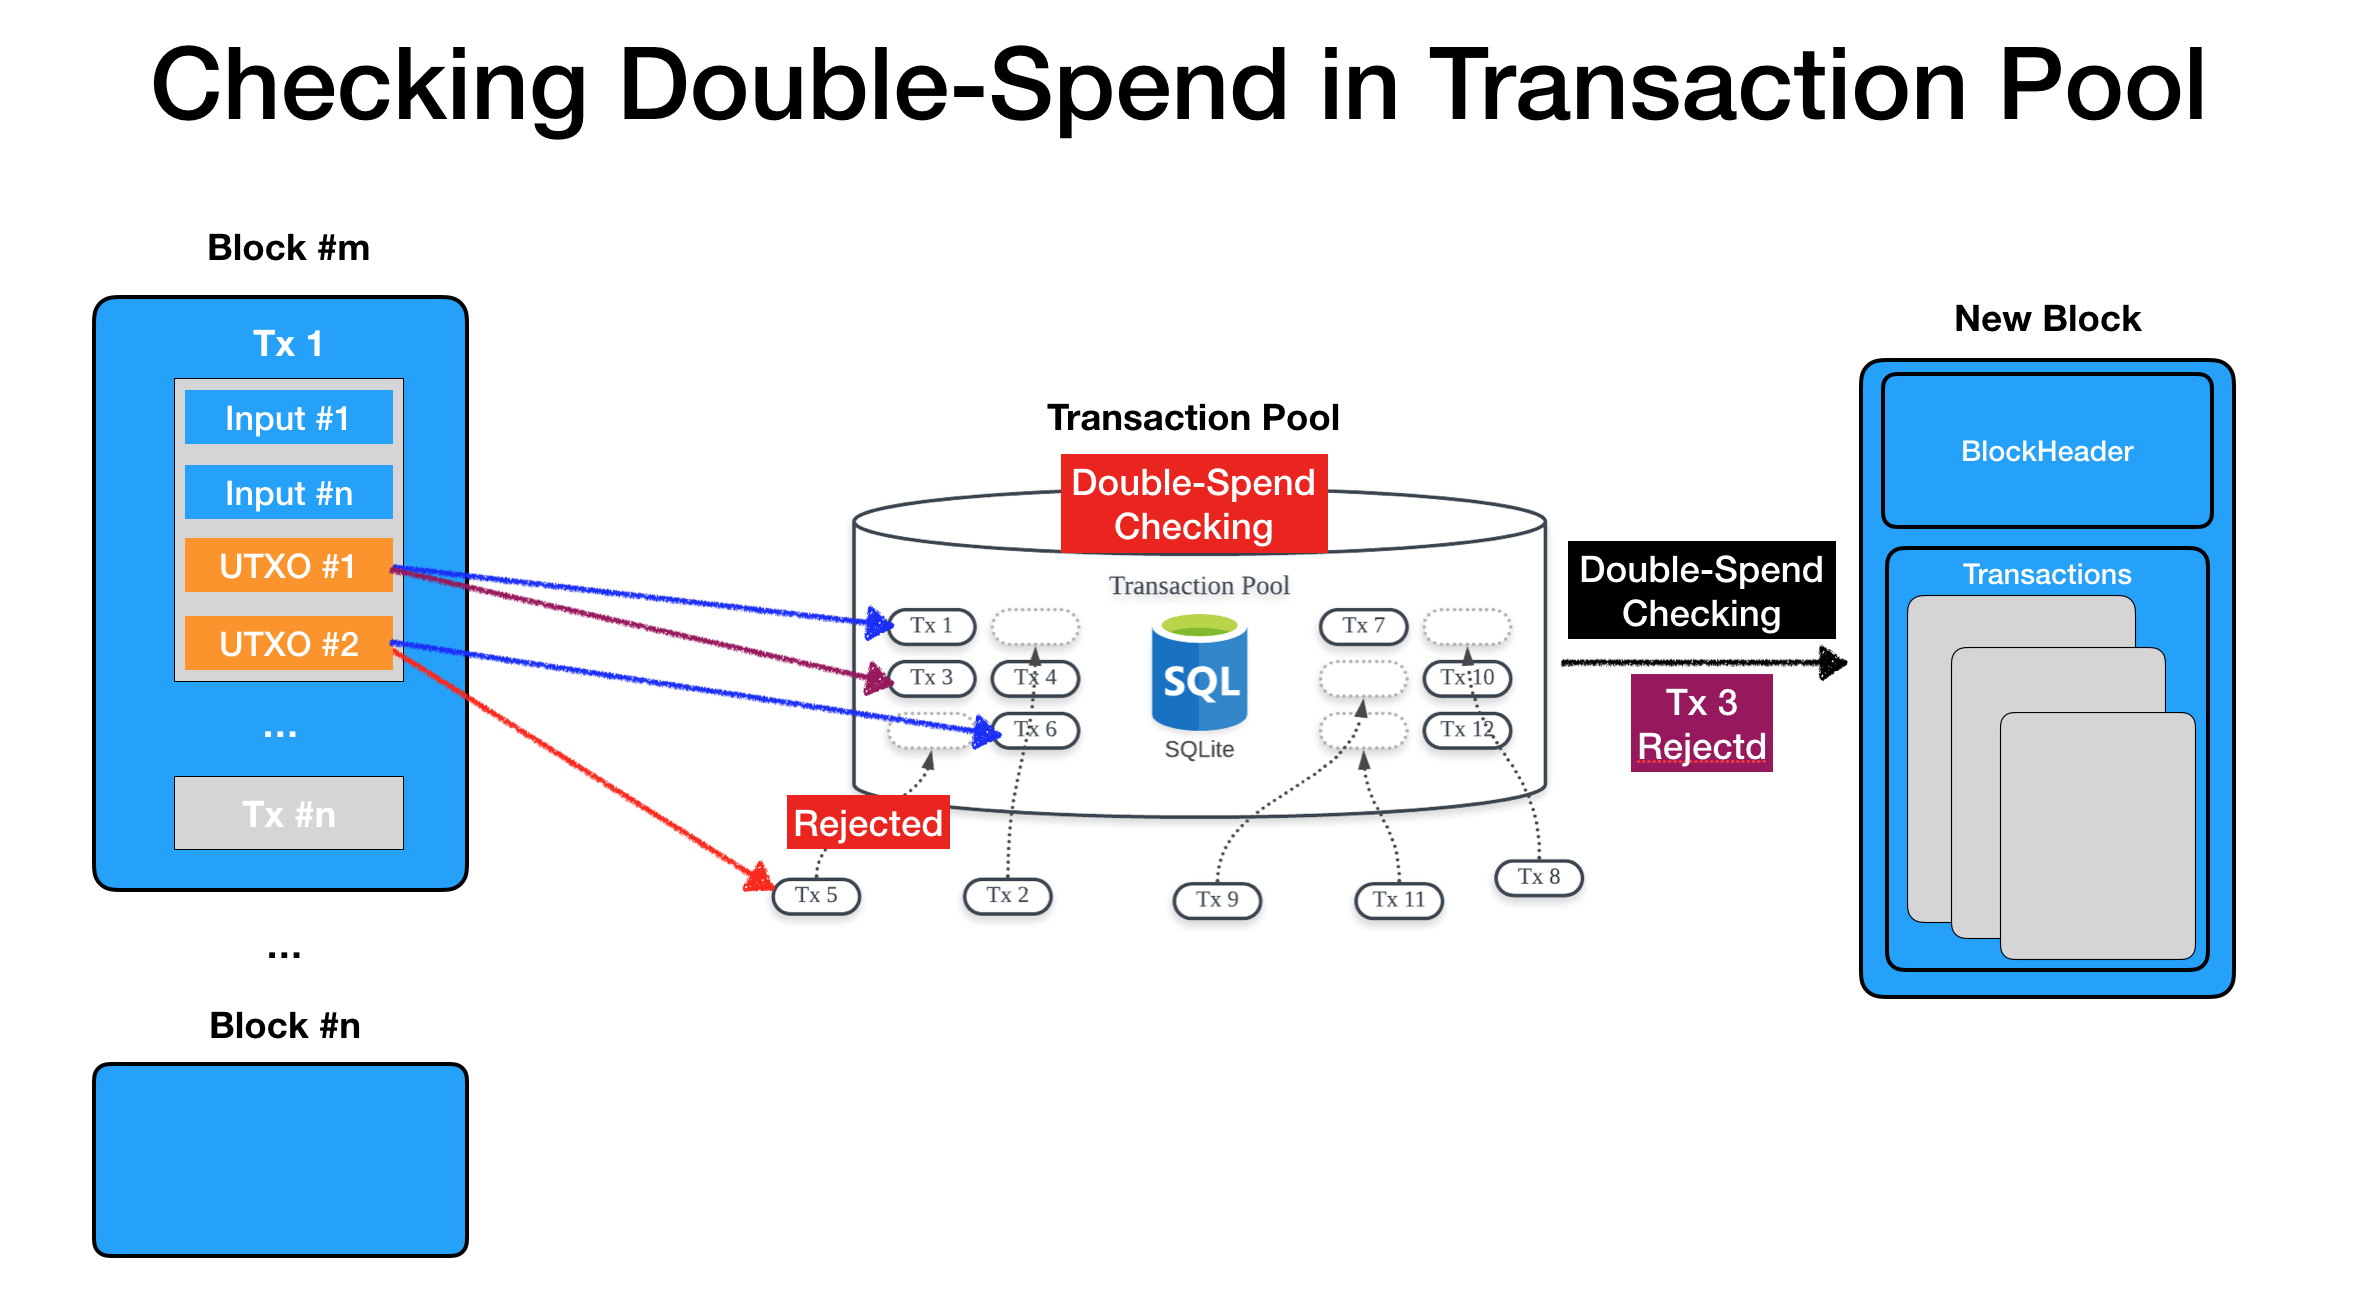 double-spend transactions